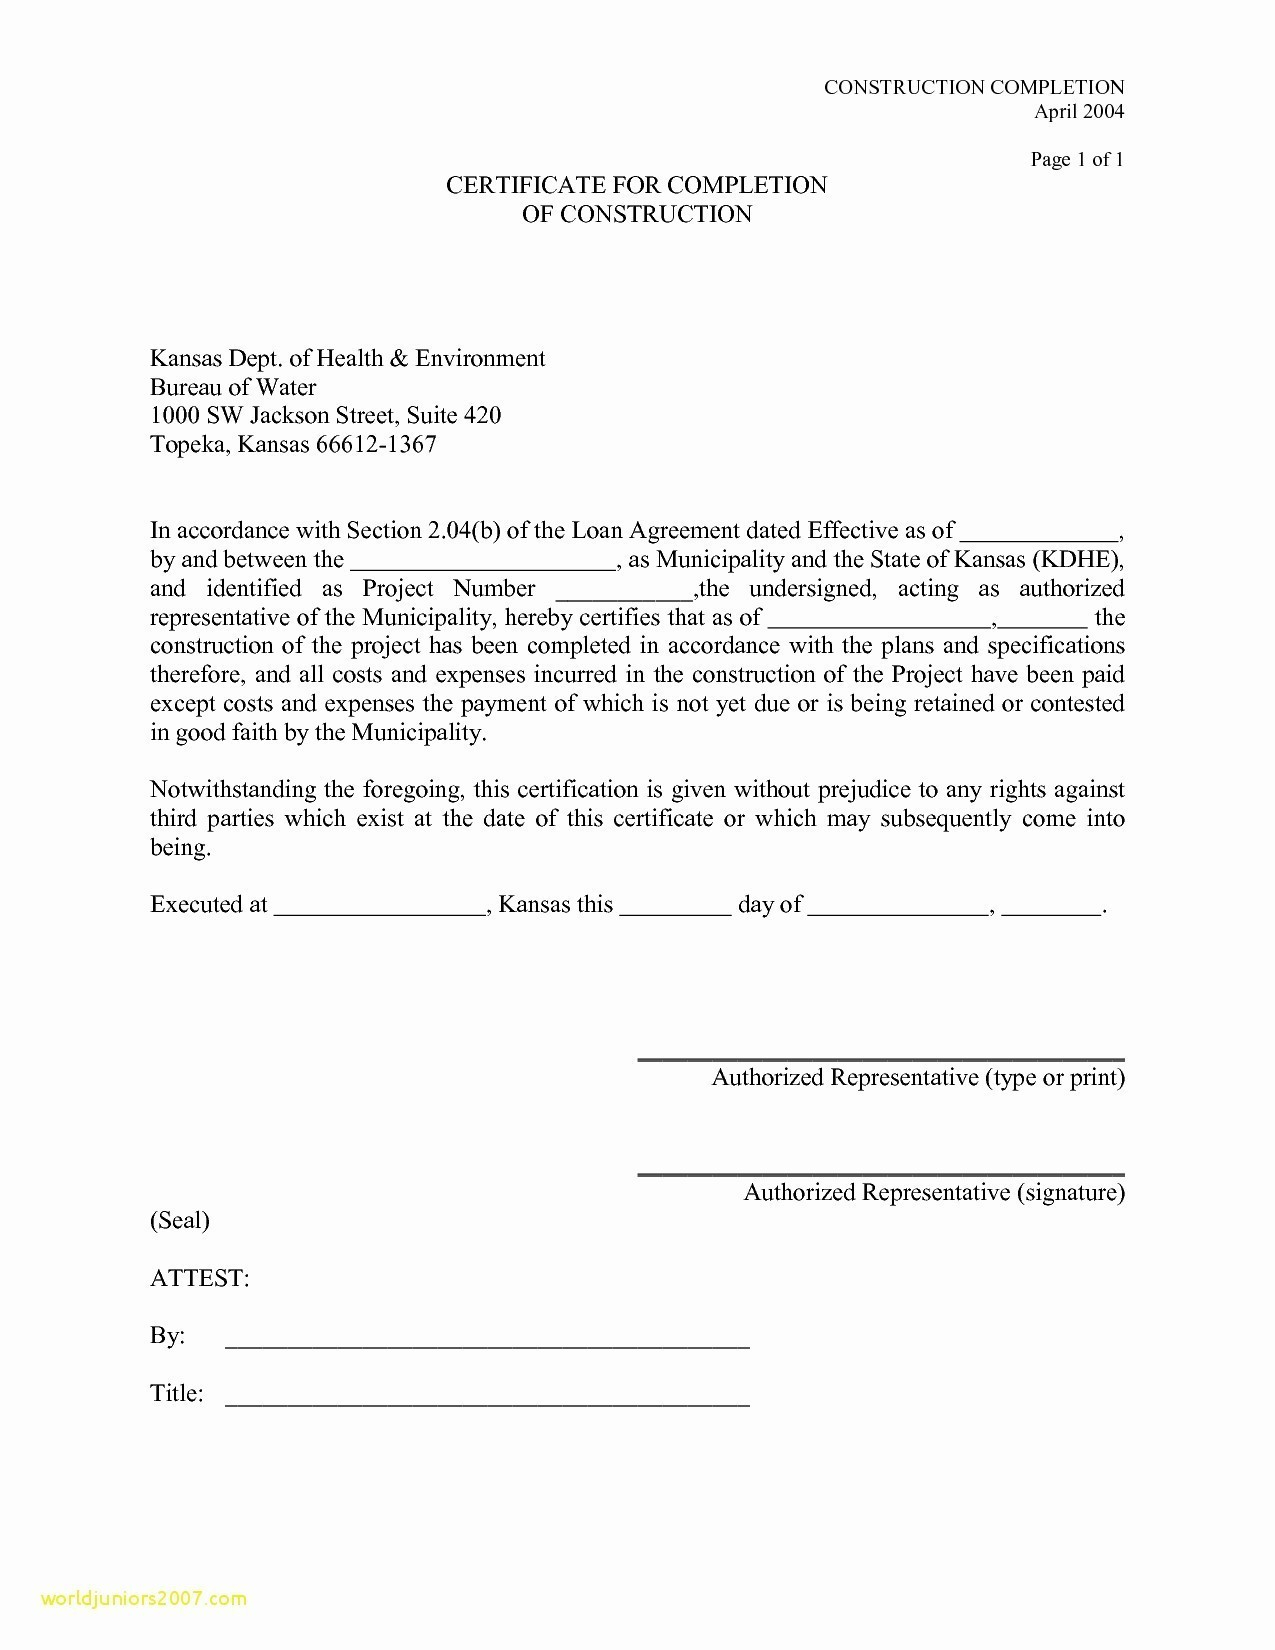 Letter Of Substantial Completion Template - Pletion Certificate Template for Construction New Pletion